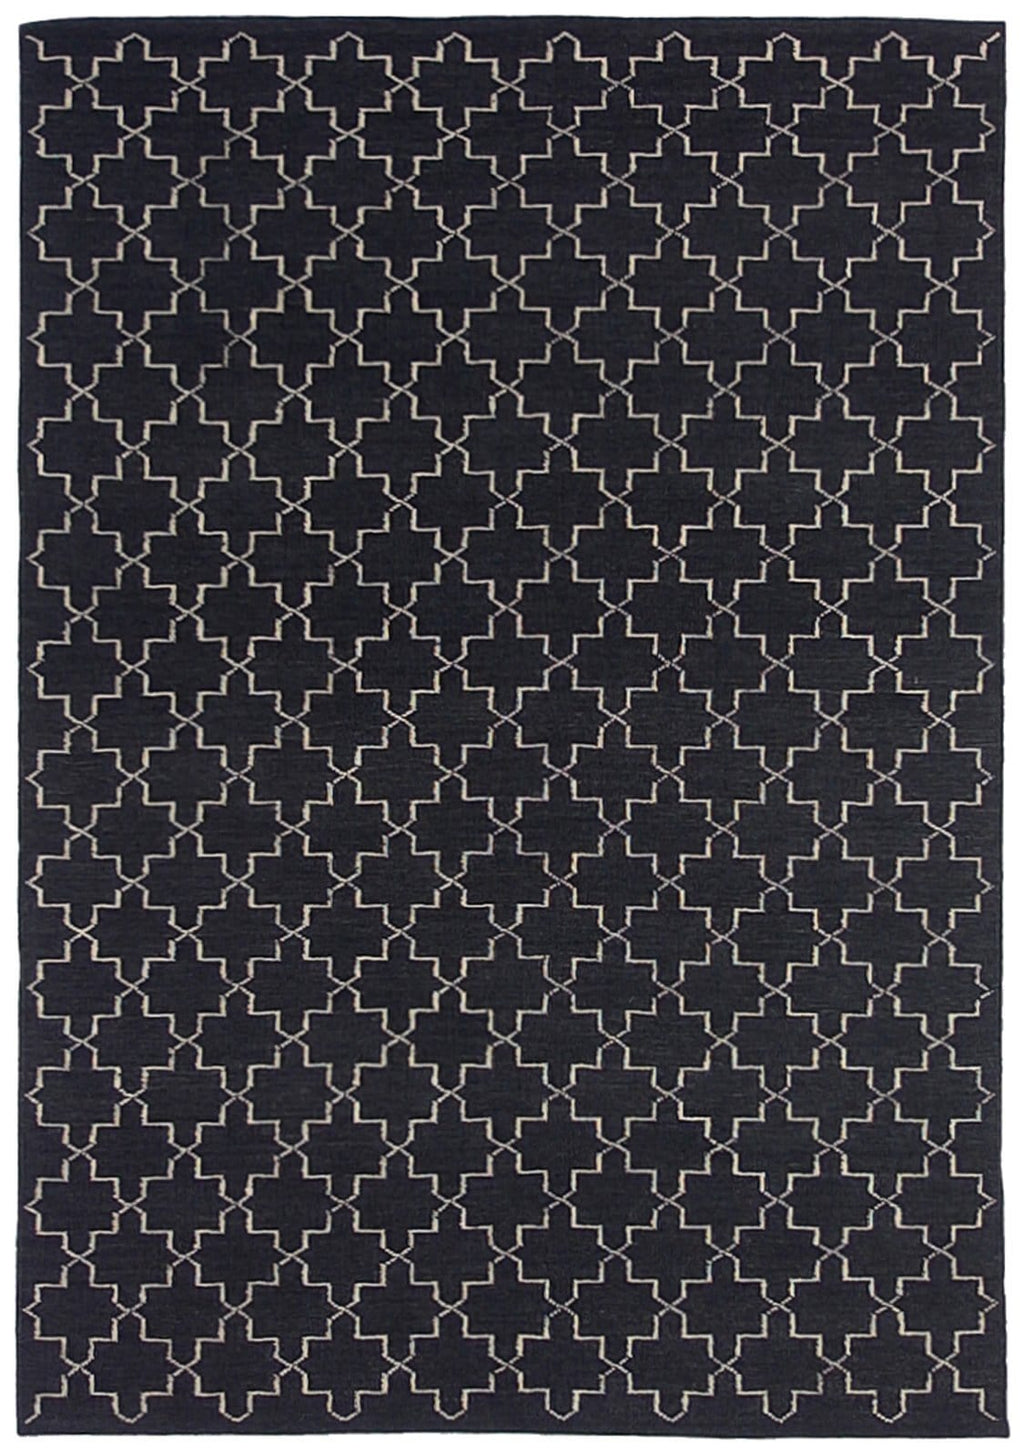 Souk Hand-Woven Black Moroccan Wool Rug